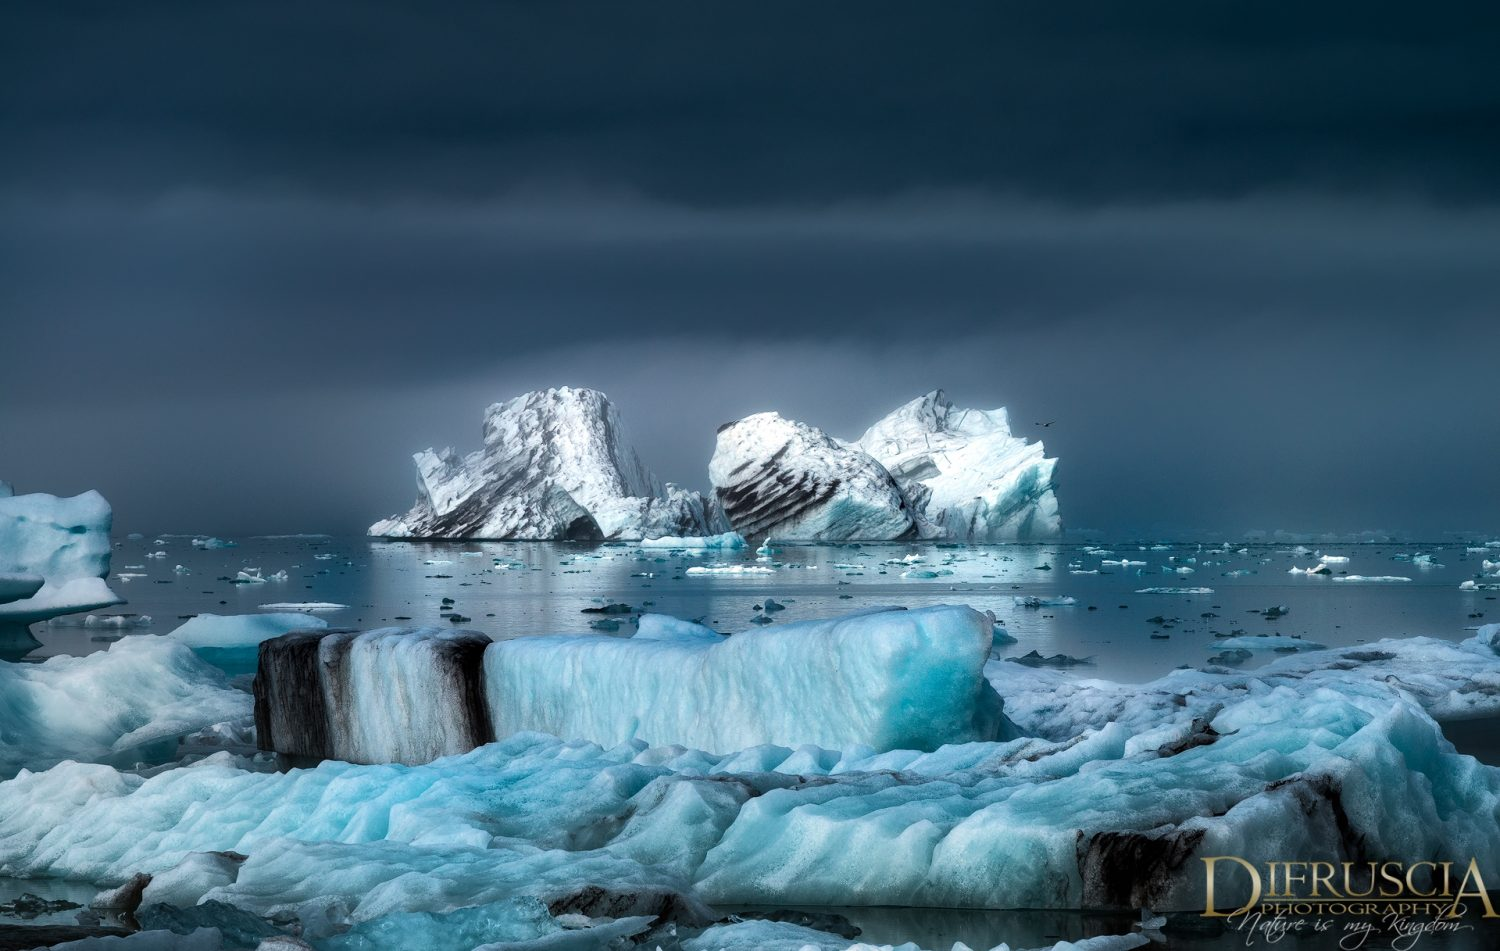 Iceland, Fine art photography, Nature photography, Limited edition prints, unique edition prints, iceberg, blue, clouds, ice, water images, Jökulsárlón